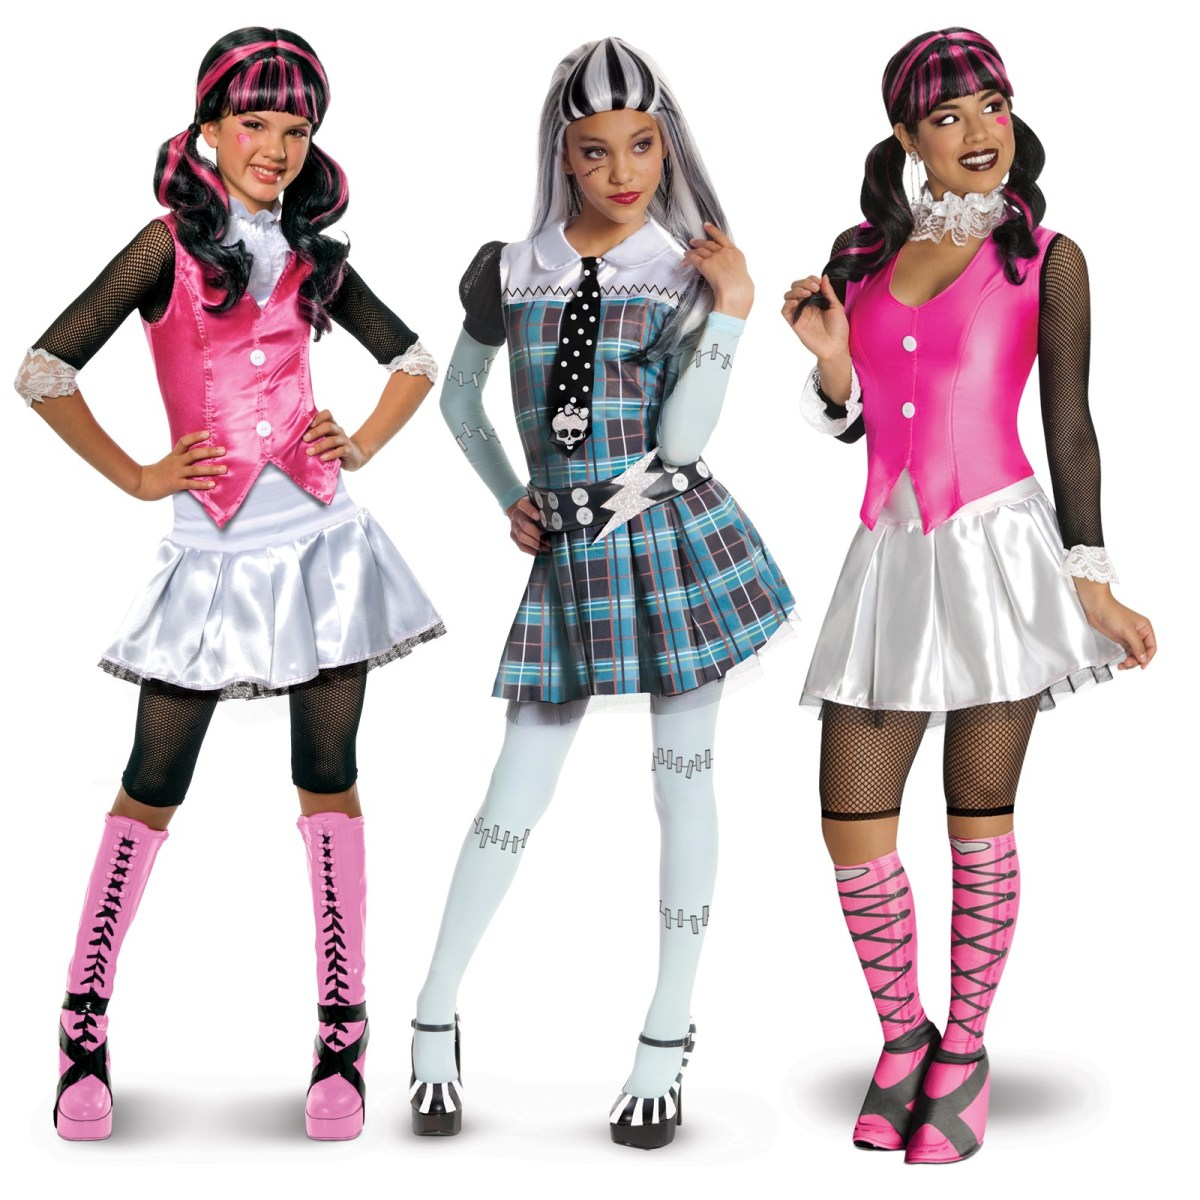 2014 Halloween Costume Ideas for Teens and Preteens ...